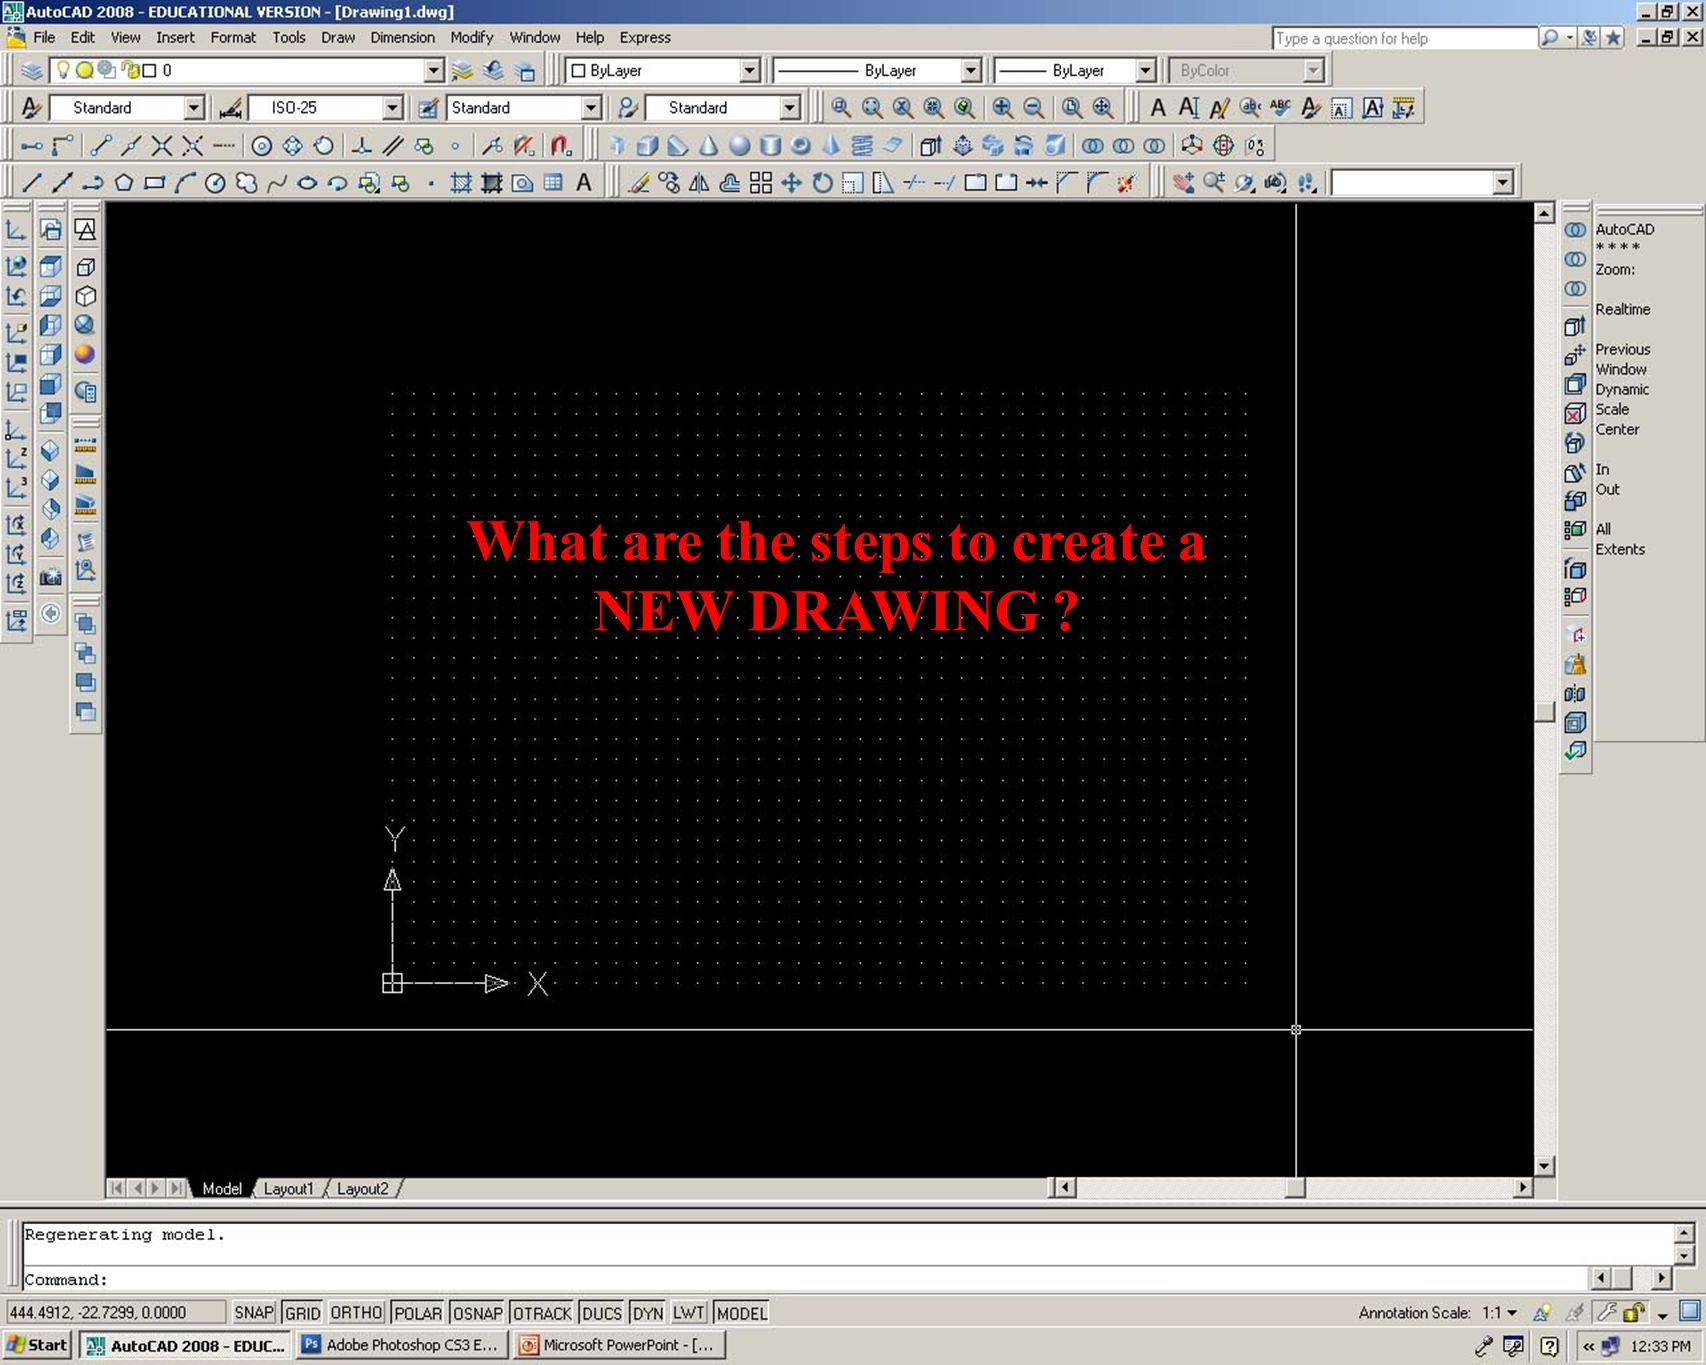 When Autocad is first opened a drawing is displayed called Drawing1.dwg This drawing contains pre-set settings which need to be changed.